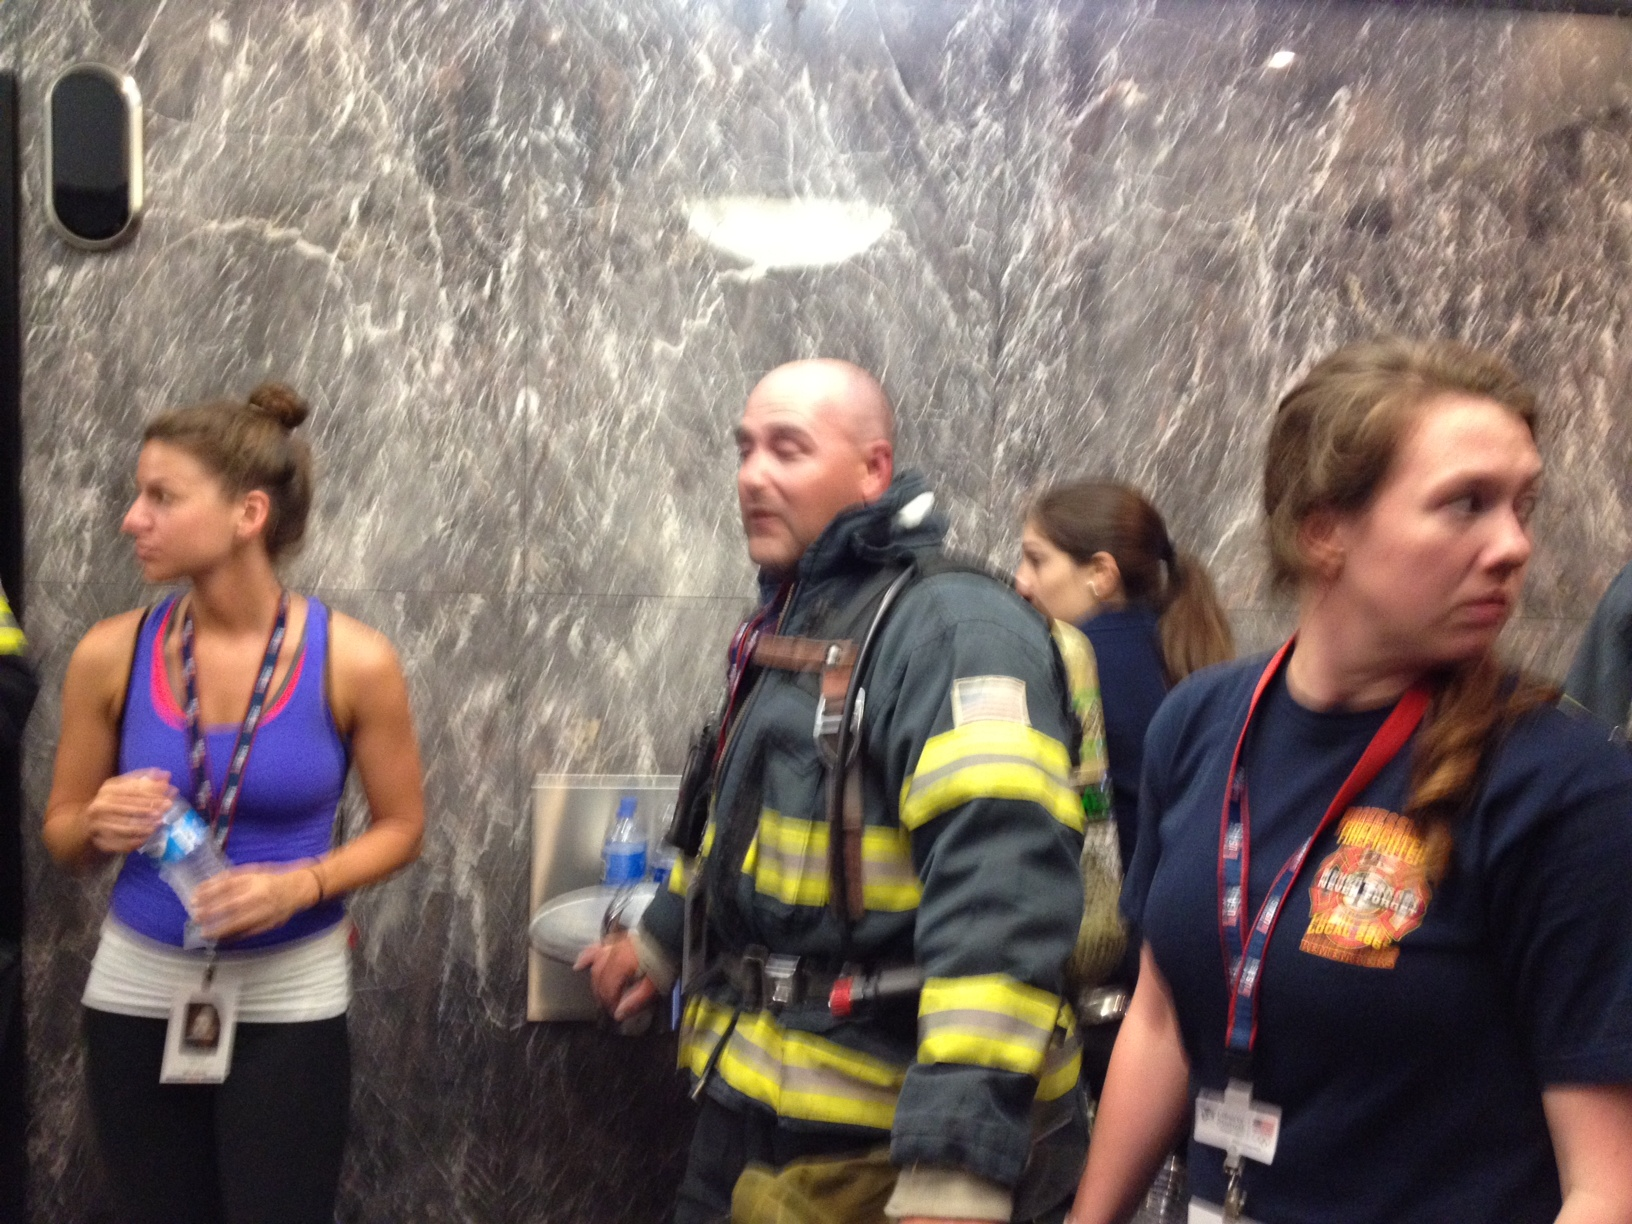 9-11 Memorial Stair Climb Nine